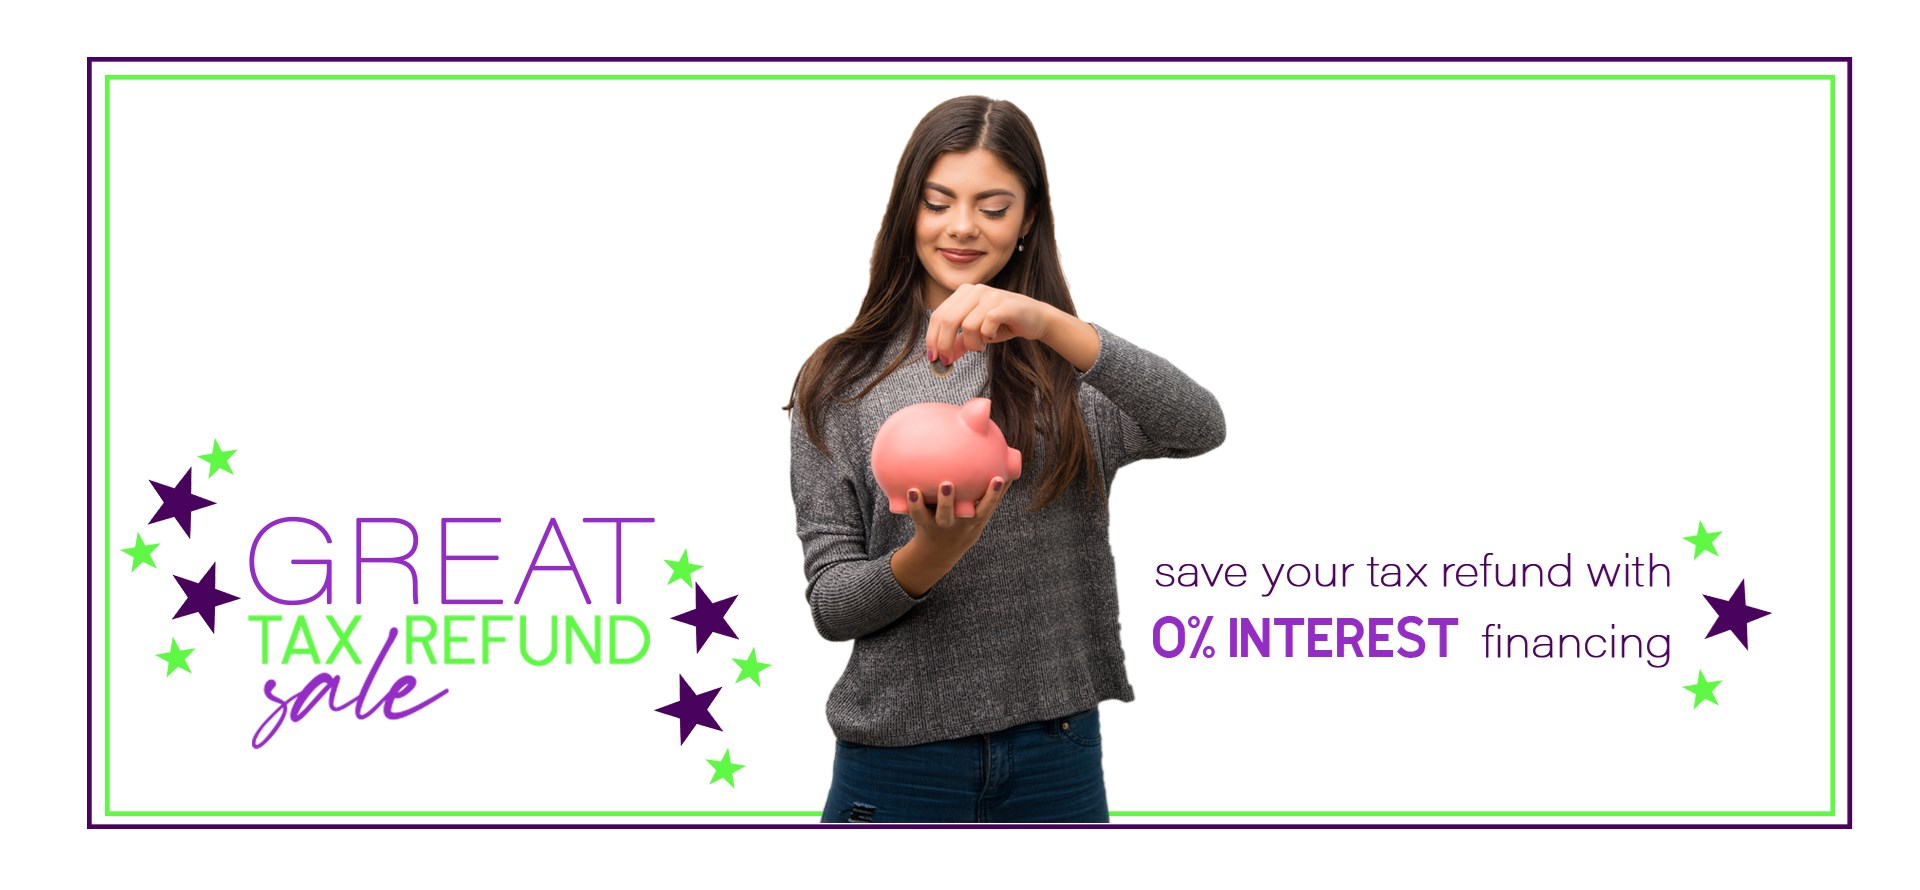 The Great Tax Refund Sale is going on now. Save your tax refund with 0% interest financing